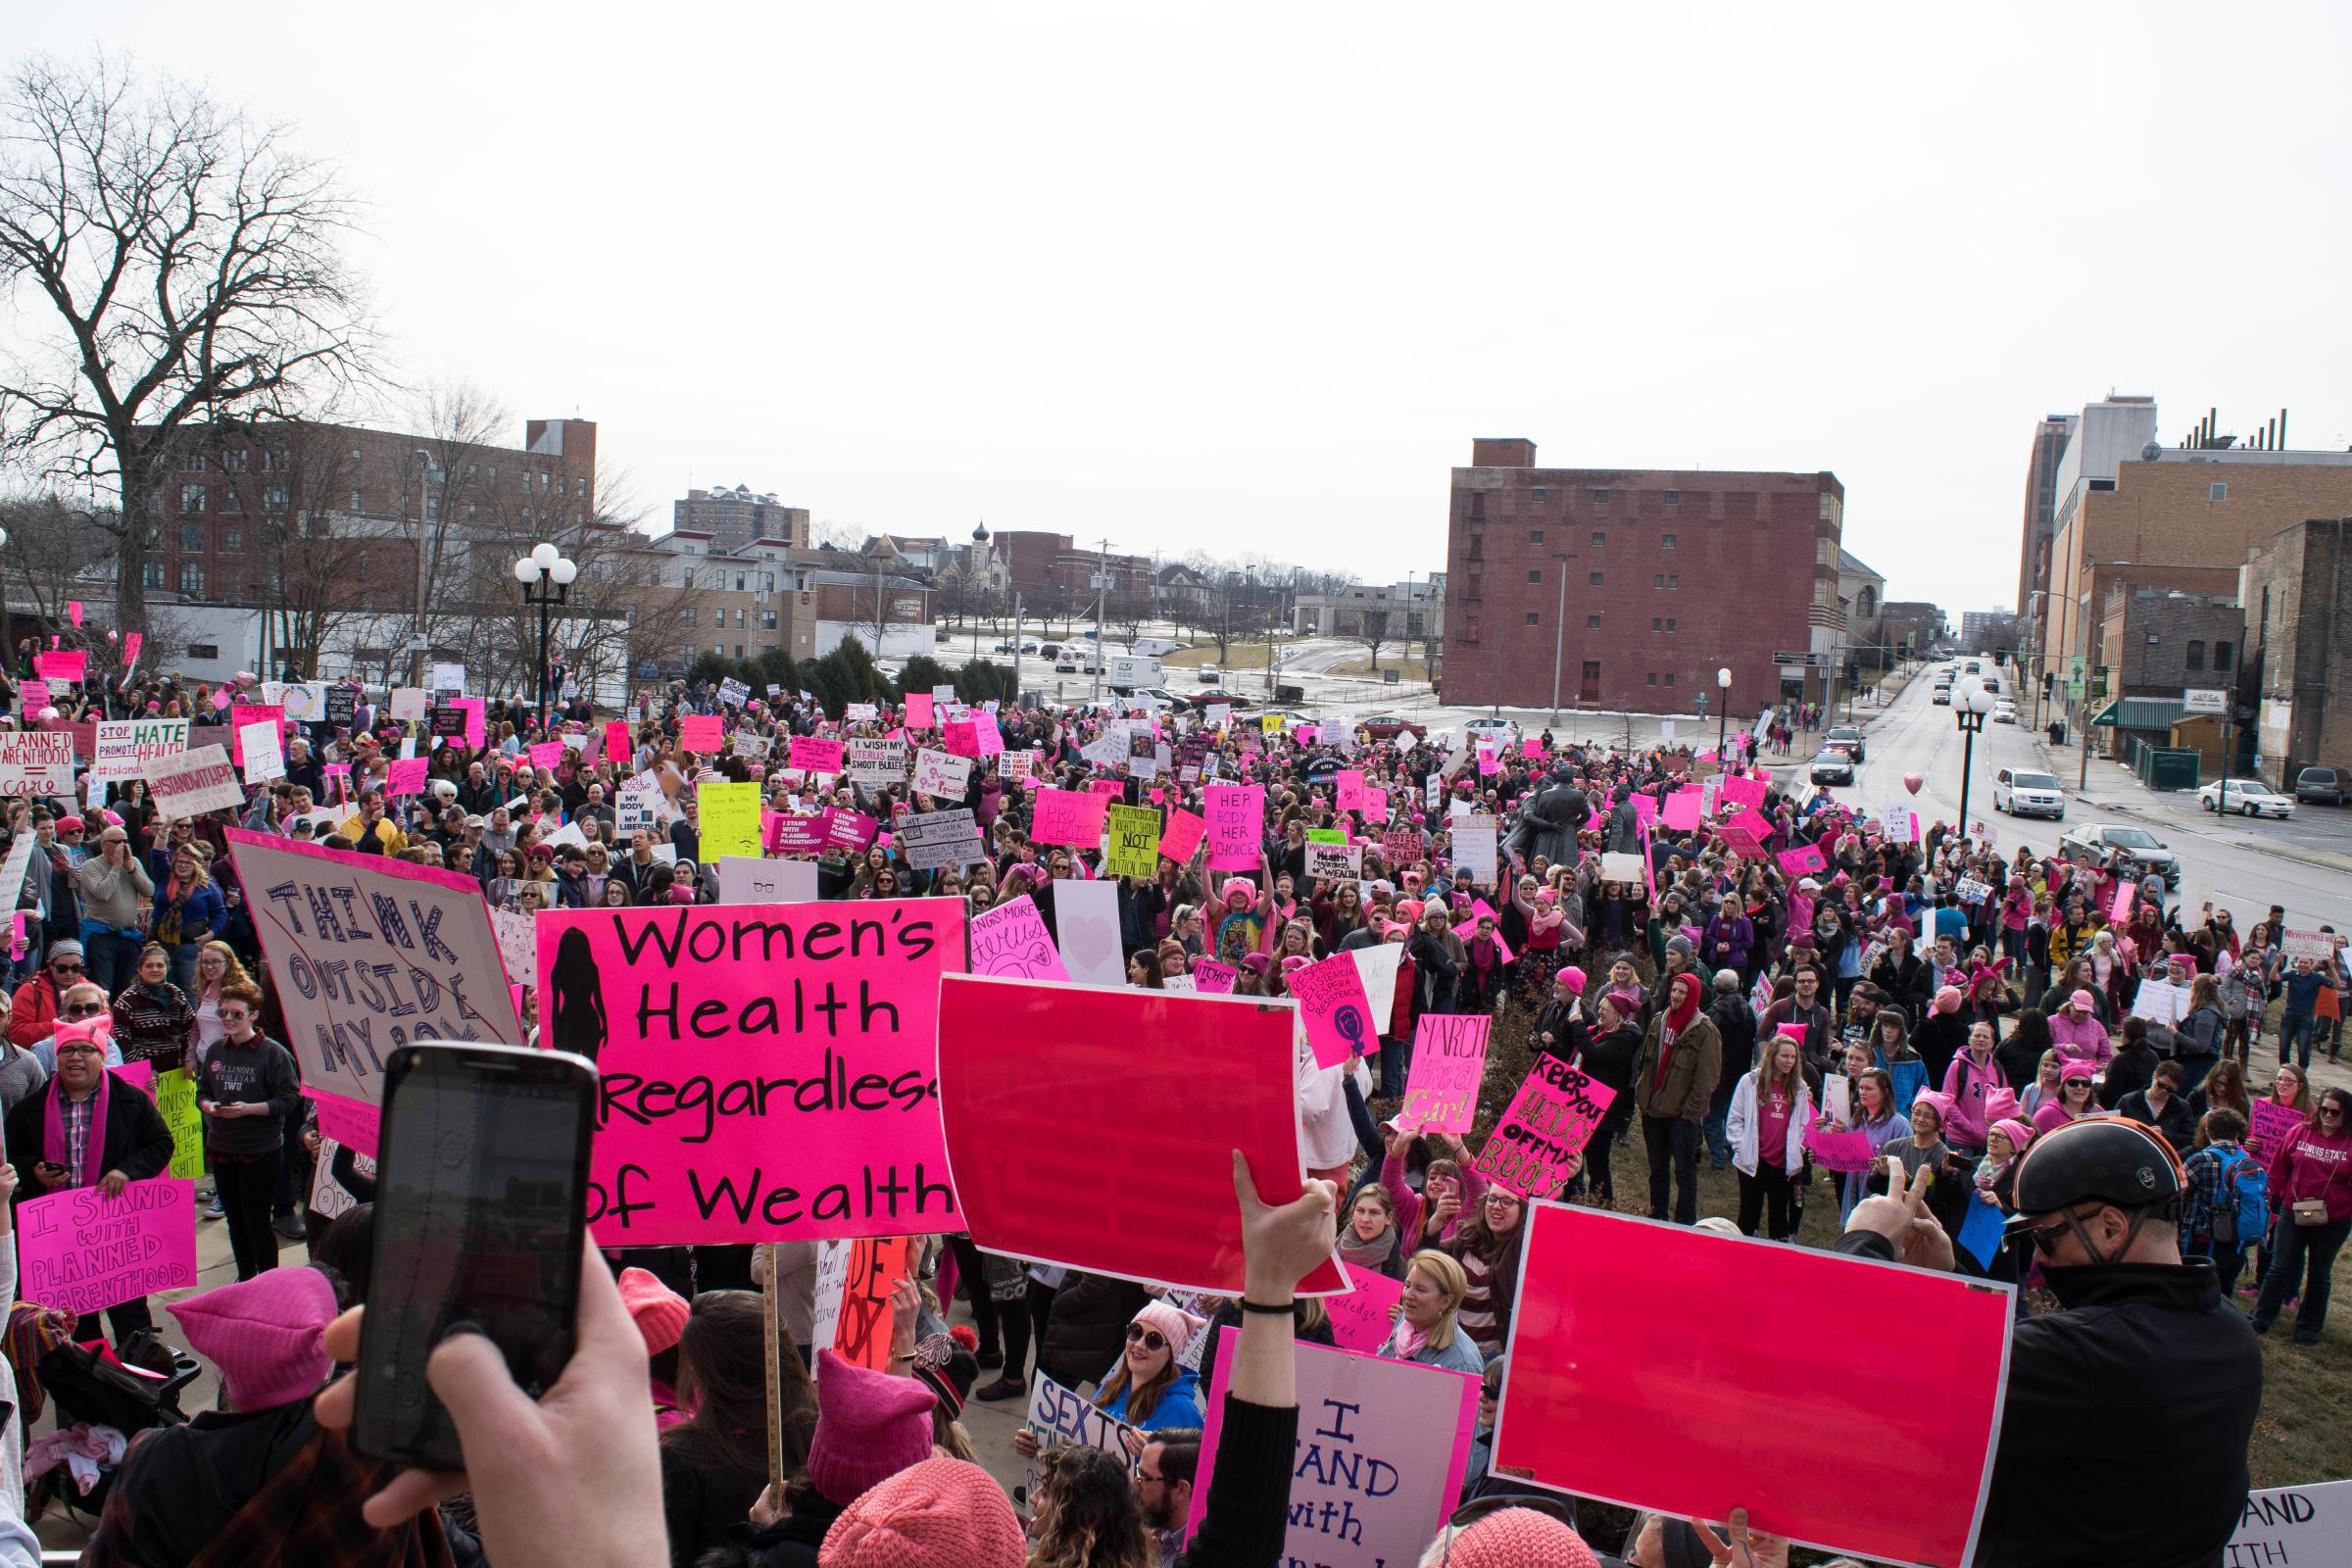 awakening a sleeping giantess grass roots women s groups spring women have thronged to rallies and es in recent months both locally and nationally as new grass roots political action organizations have formed